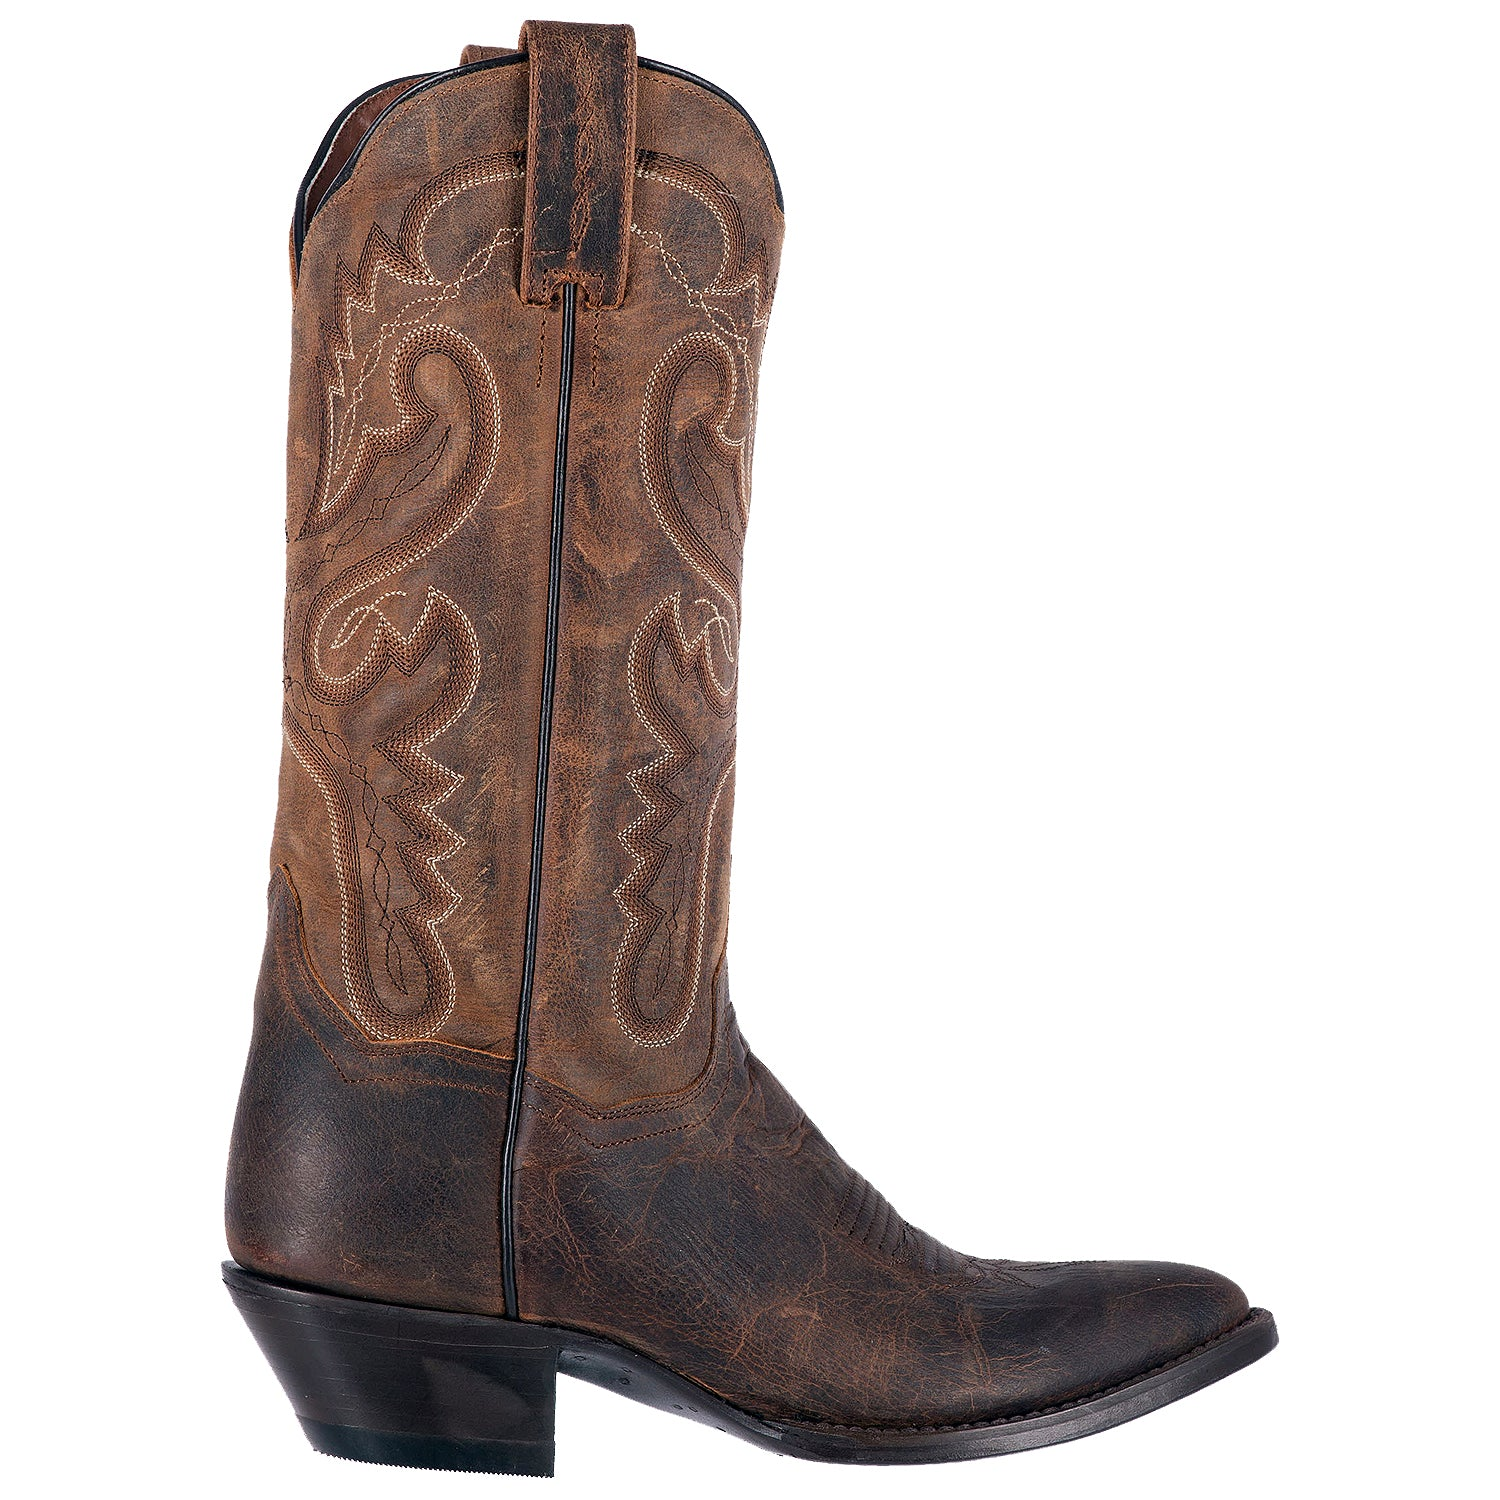 MARLA LEATHER BOOT 4197035311146